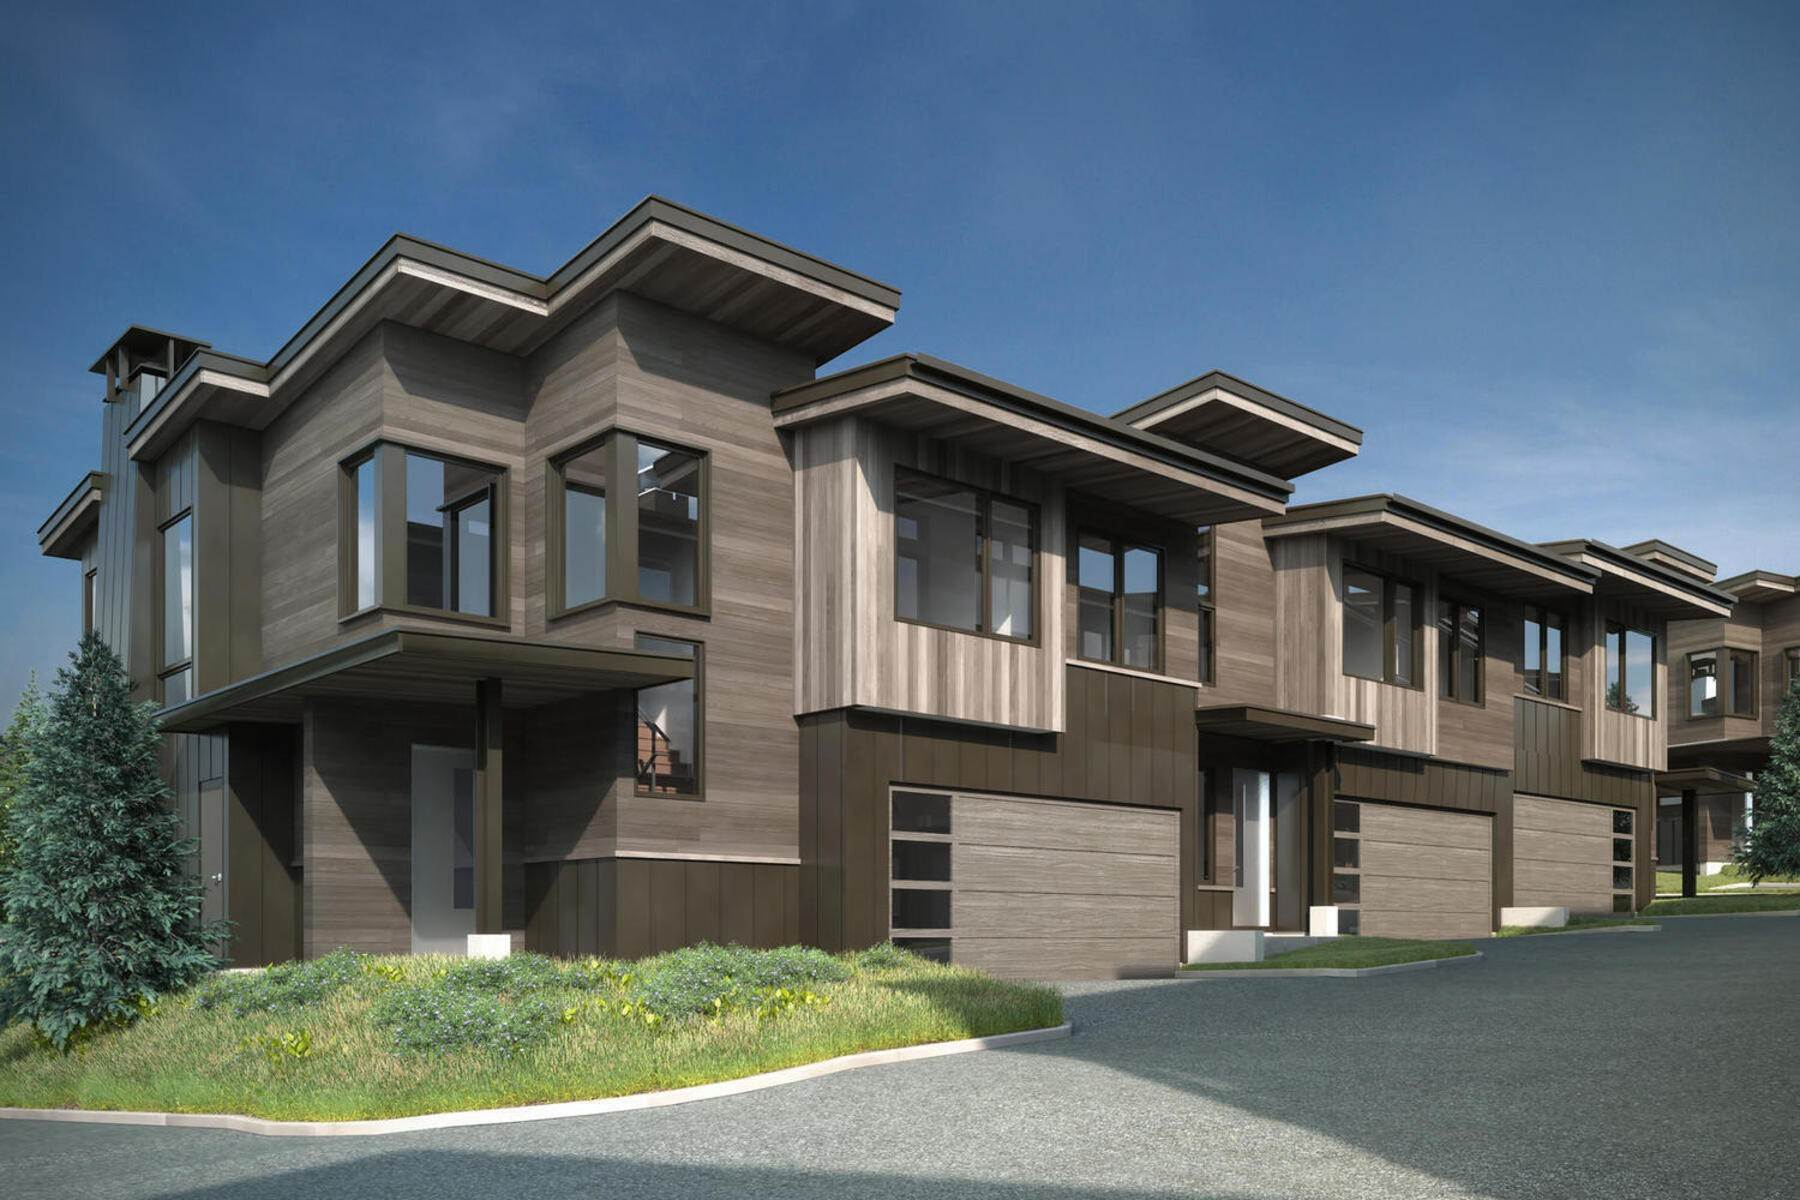 townhouses for Sale at Ski-In Town Homes in Canyons Village 3496 Ridgeline Drive Park City, Utah 84098 United States